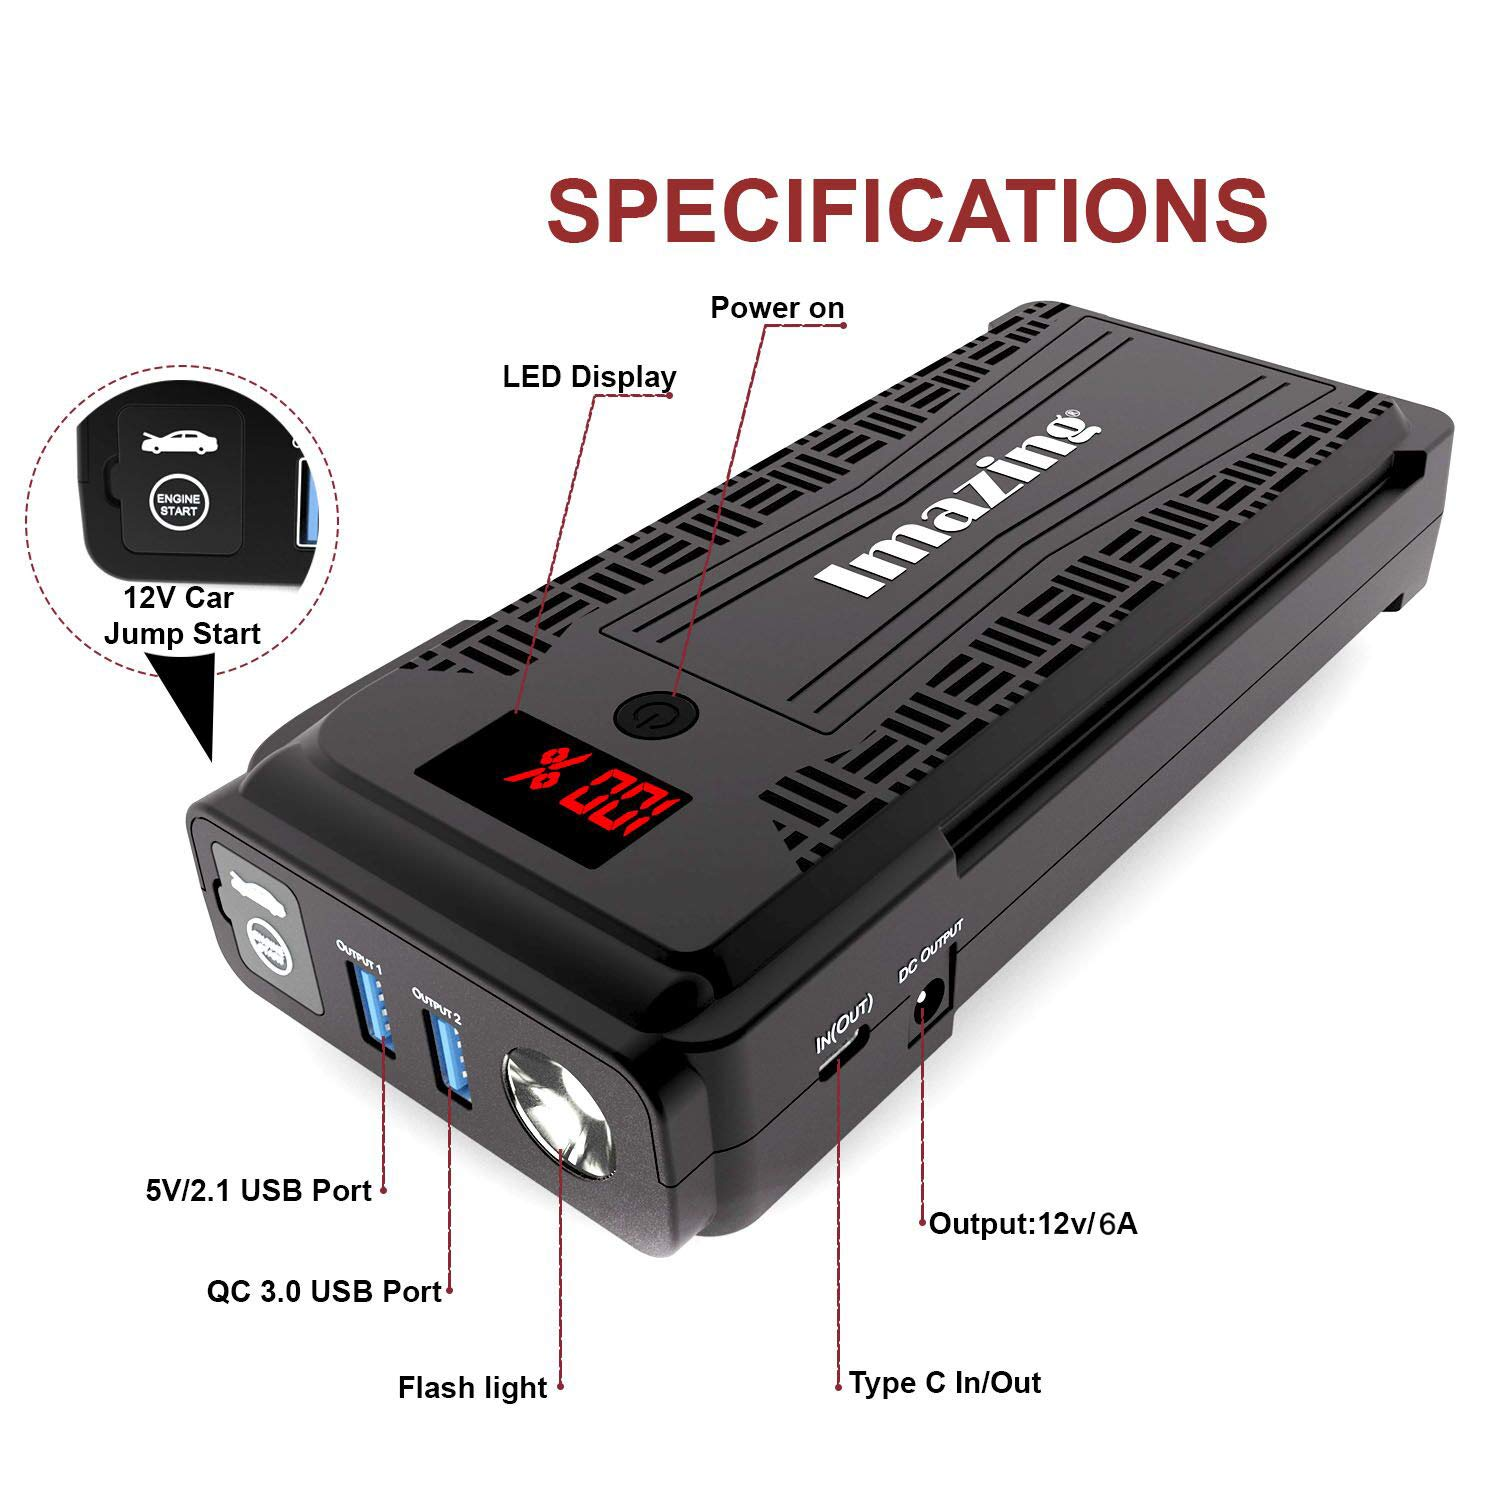 Imazing Portable Car Jump Starter - 2500A Peak 20000mAH (Up to 8L Gas or 8L Diesel Engine) 12V Auto Battery Booster Portable Power Pack with LCD Display Jumper Cables, QC 3.0 and LED Light by Imazing (Image #2)